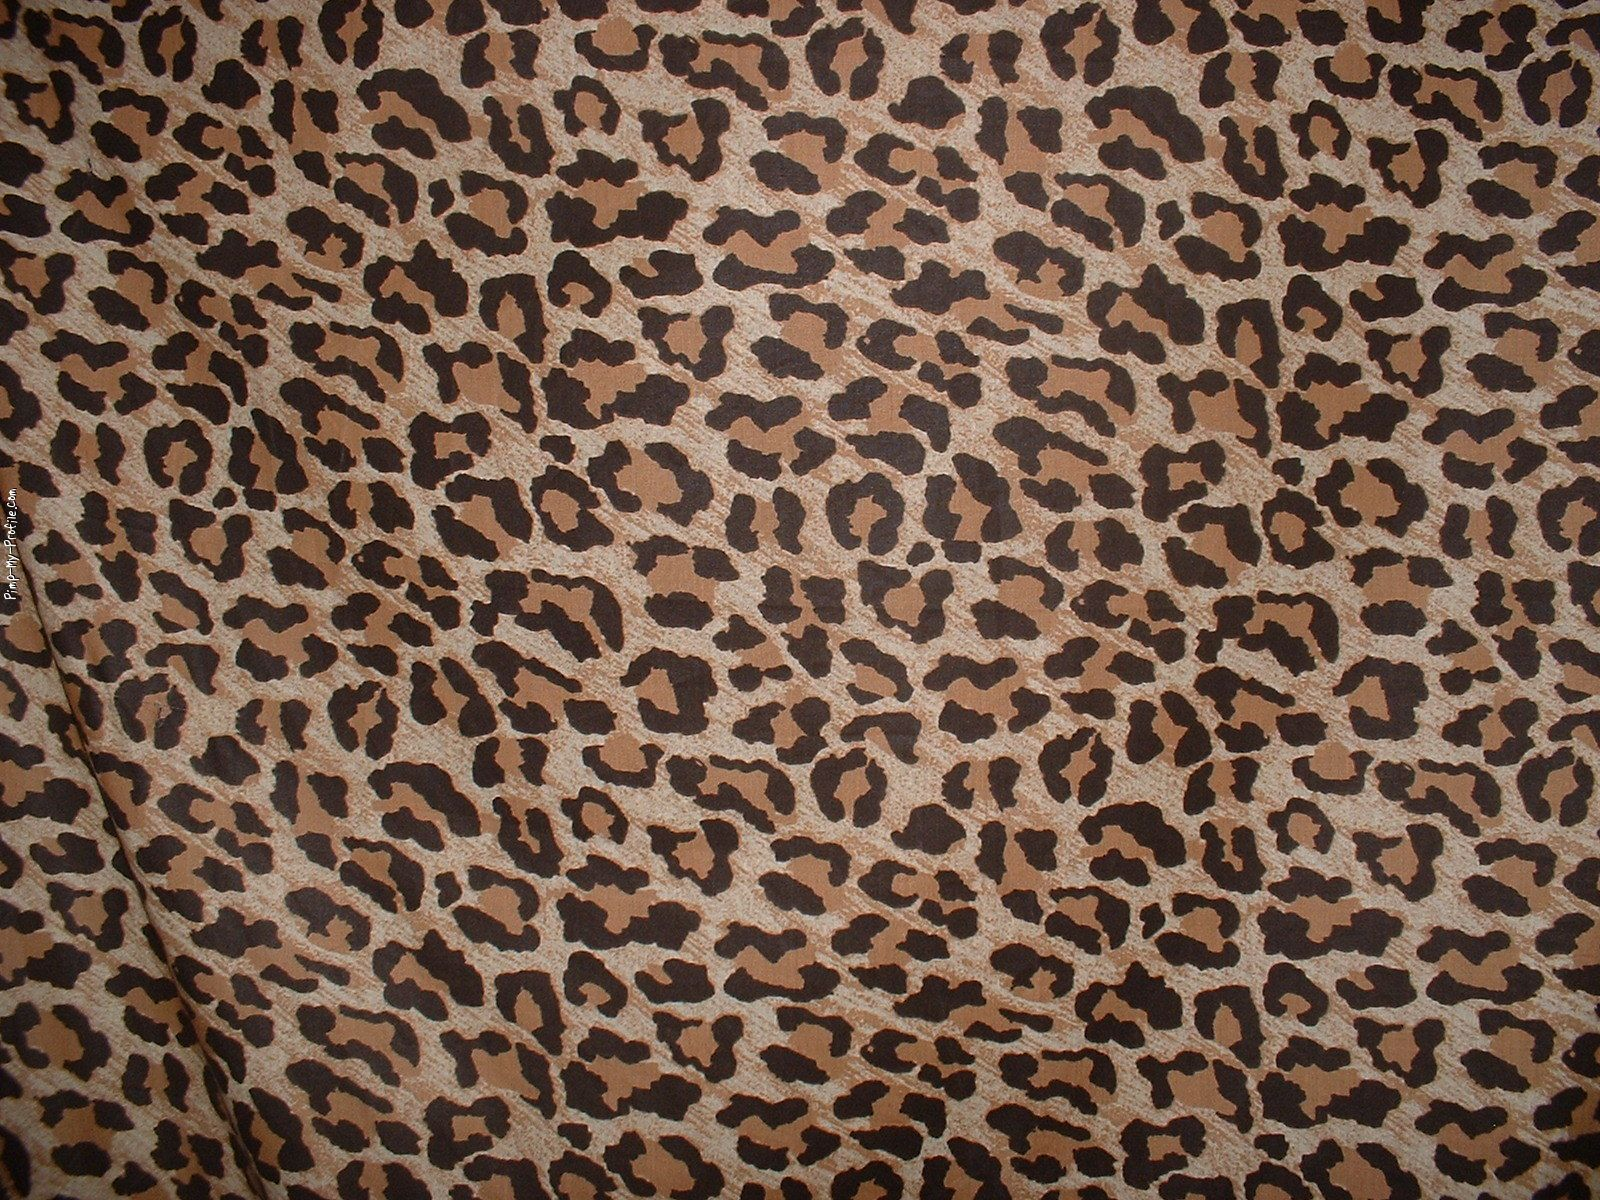 White Heart Leopard Print Twitter Header - Animal Print Wallpapers